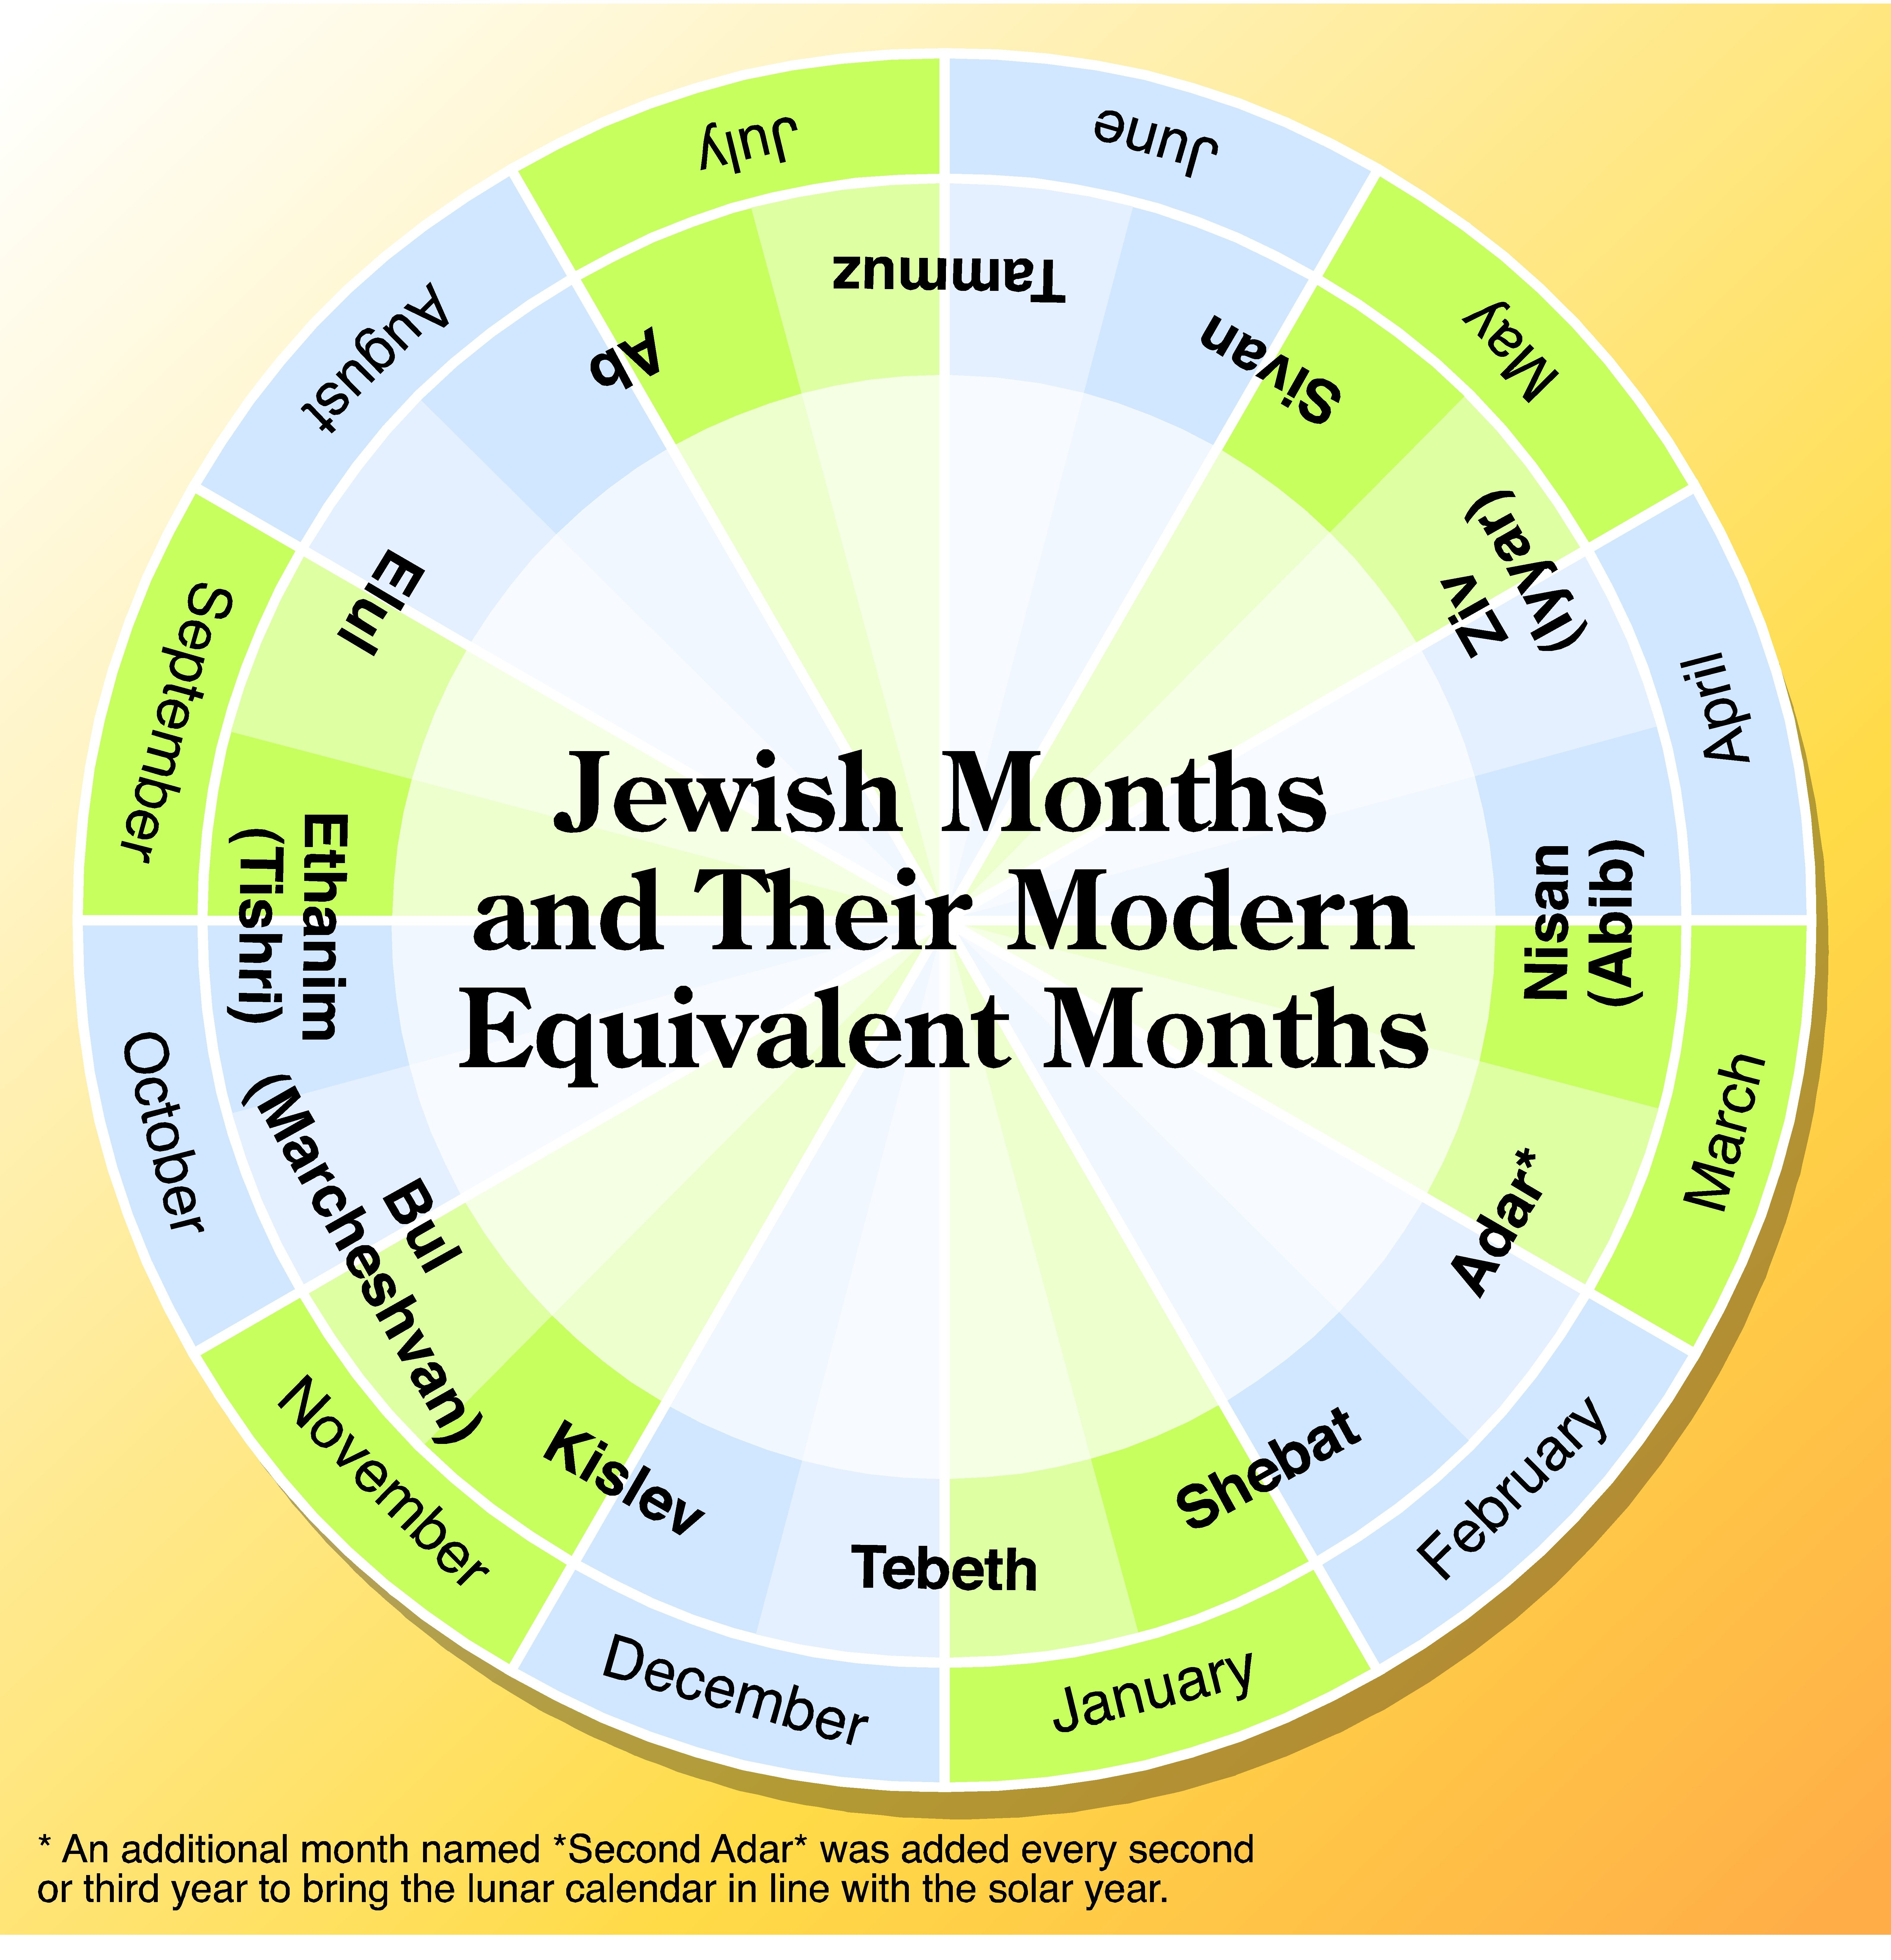 Ever Wondered How The Jewish Months Line Up With The